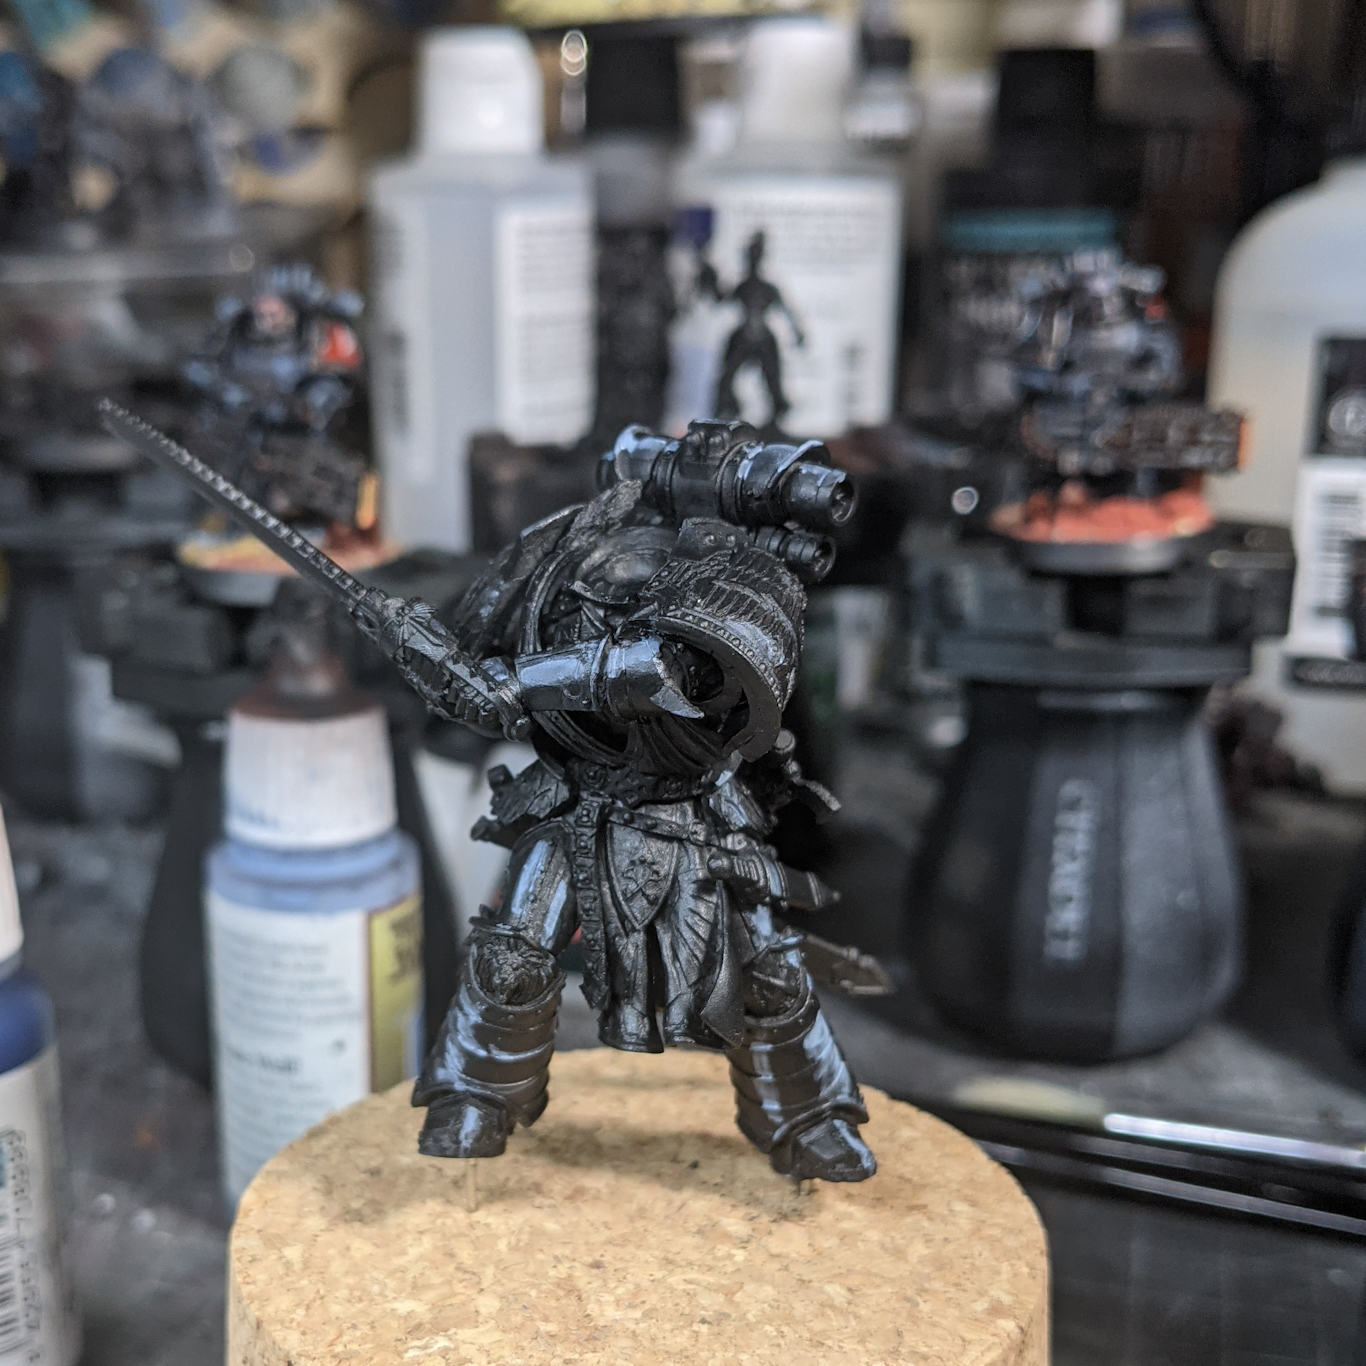 A partially painted (and headless) model of a model warrior in ornate black armour.  The model is painted black, but bold blue highlights have been placed to indicate the glossy armour.